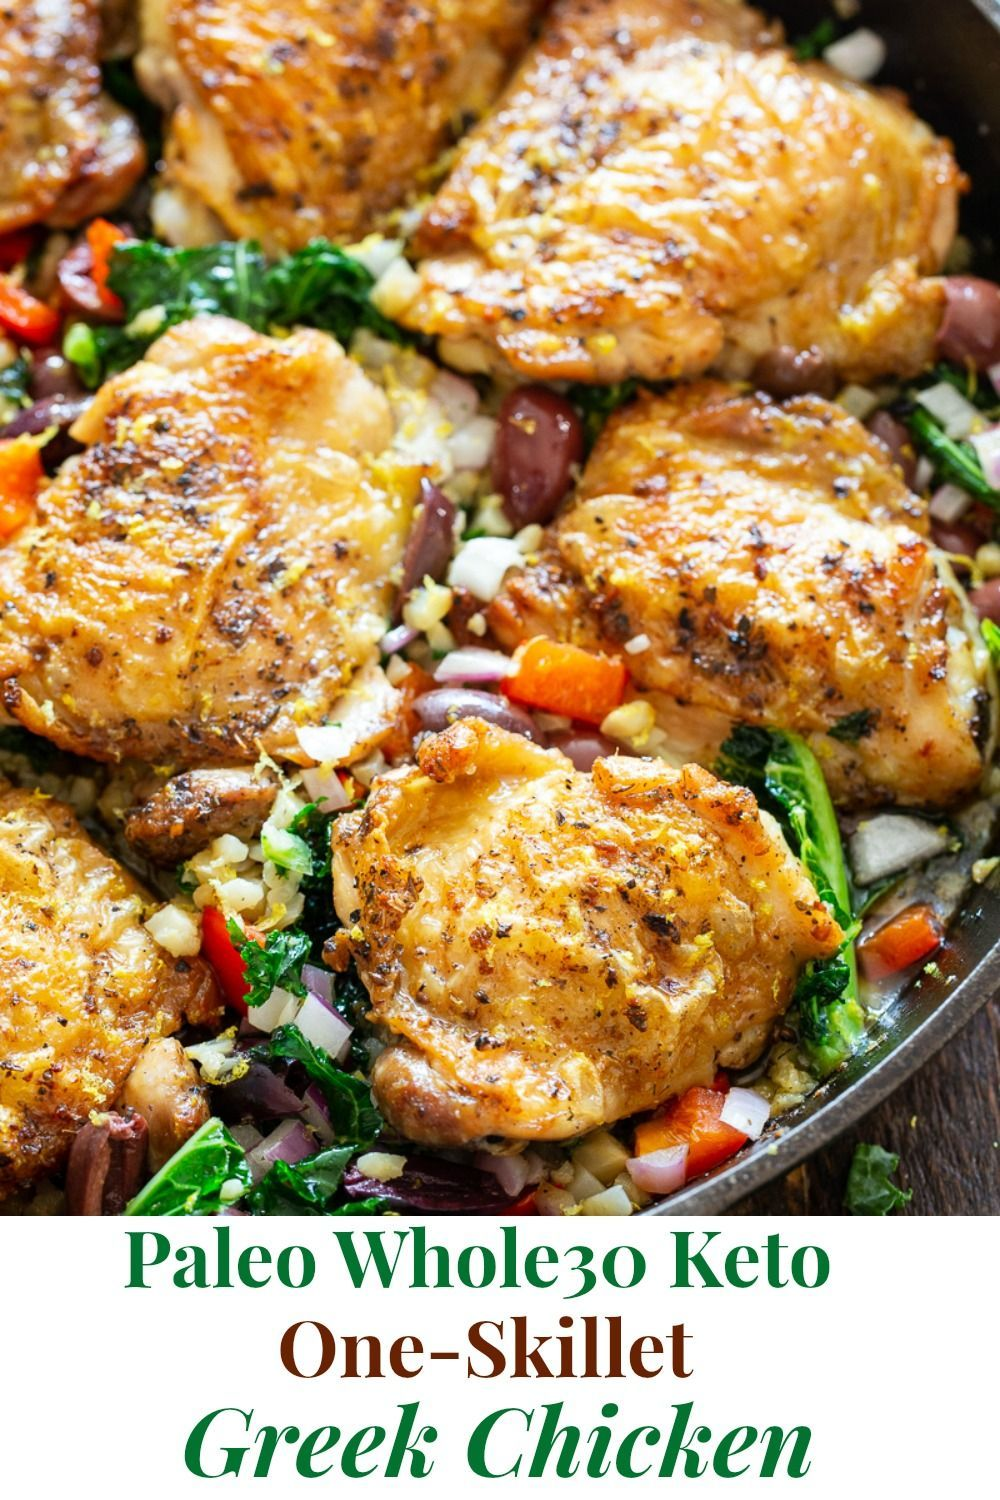 Photo of A frying pan of Greek Chicken {Paleo, Whole30, Keto} |